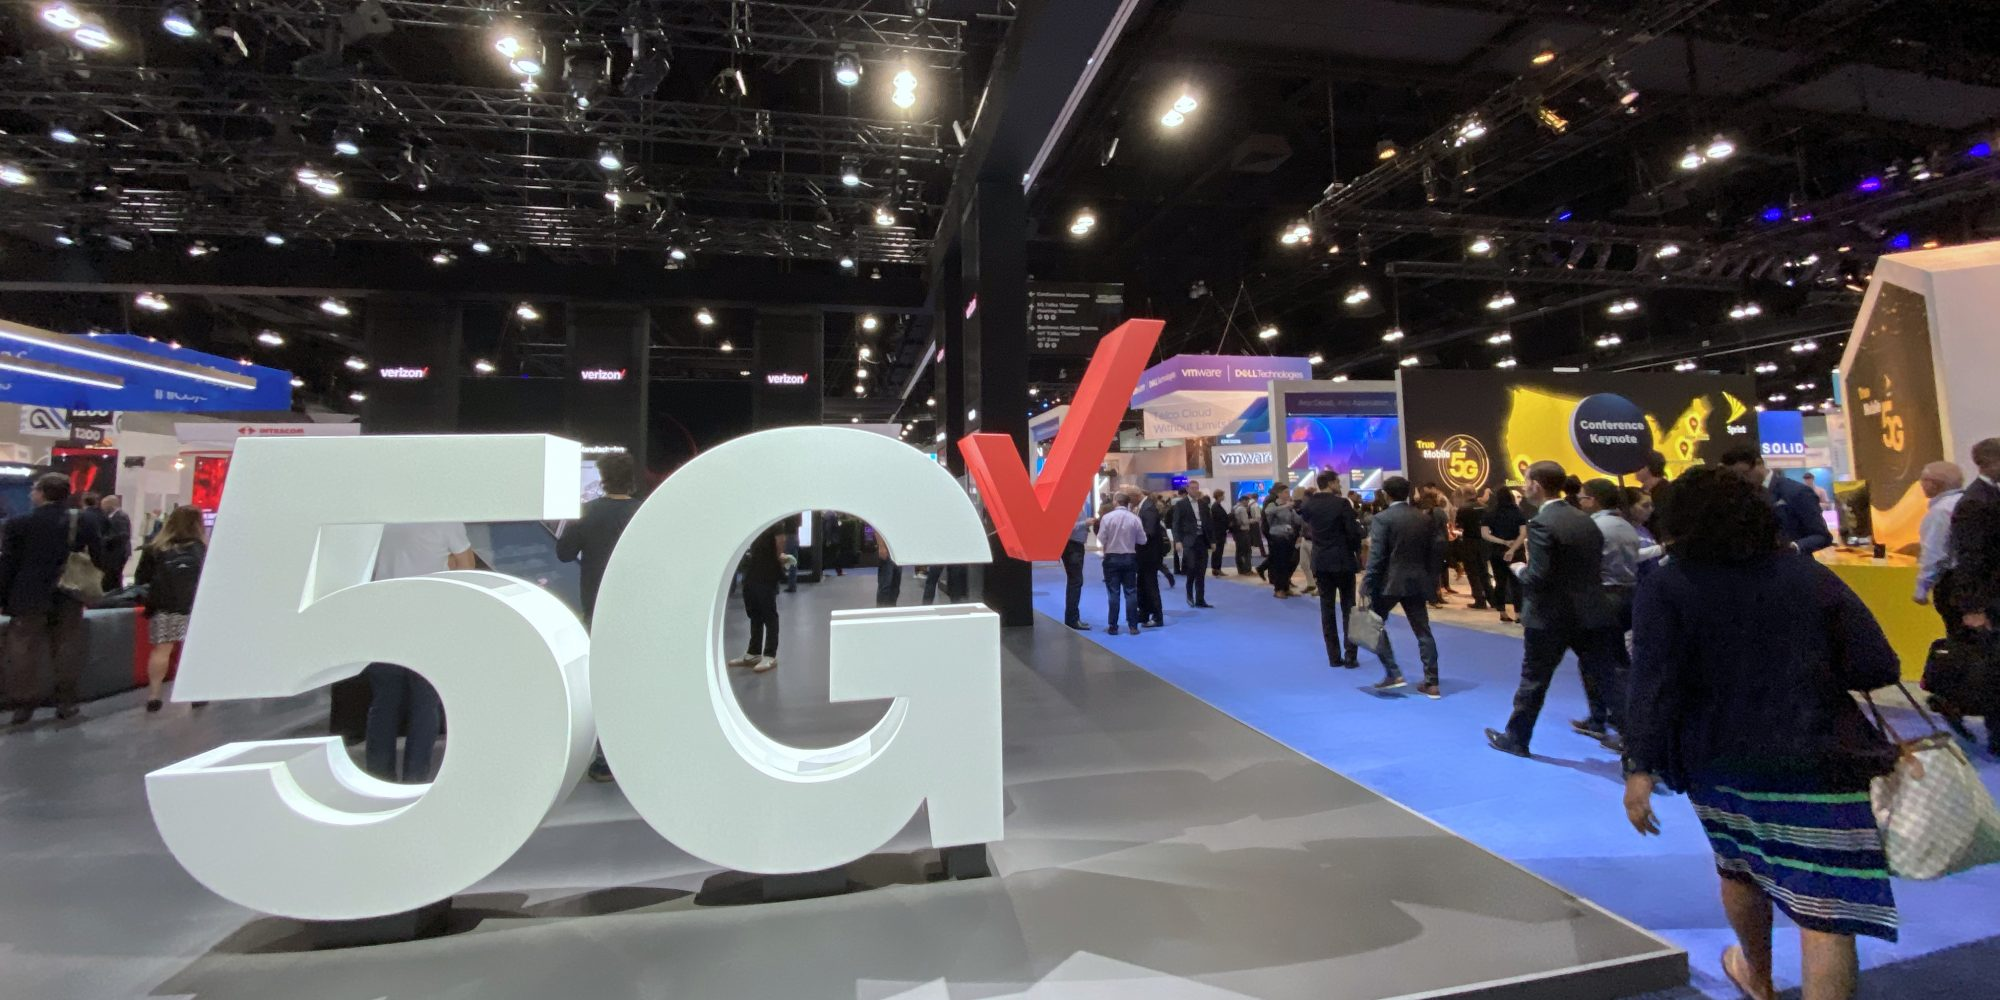 Bbb Blasts Verizon For 5g Ads Says Coverage Claims Mislead Customers Venturebeat